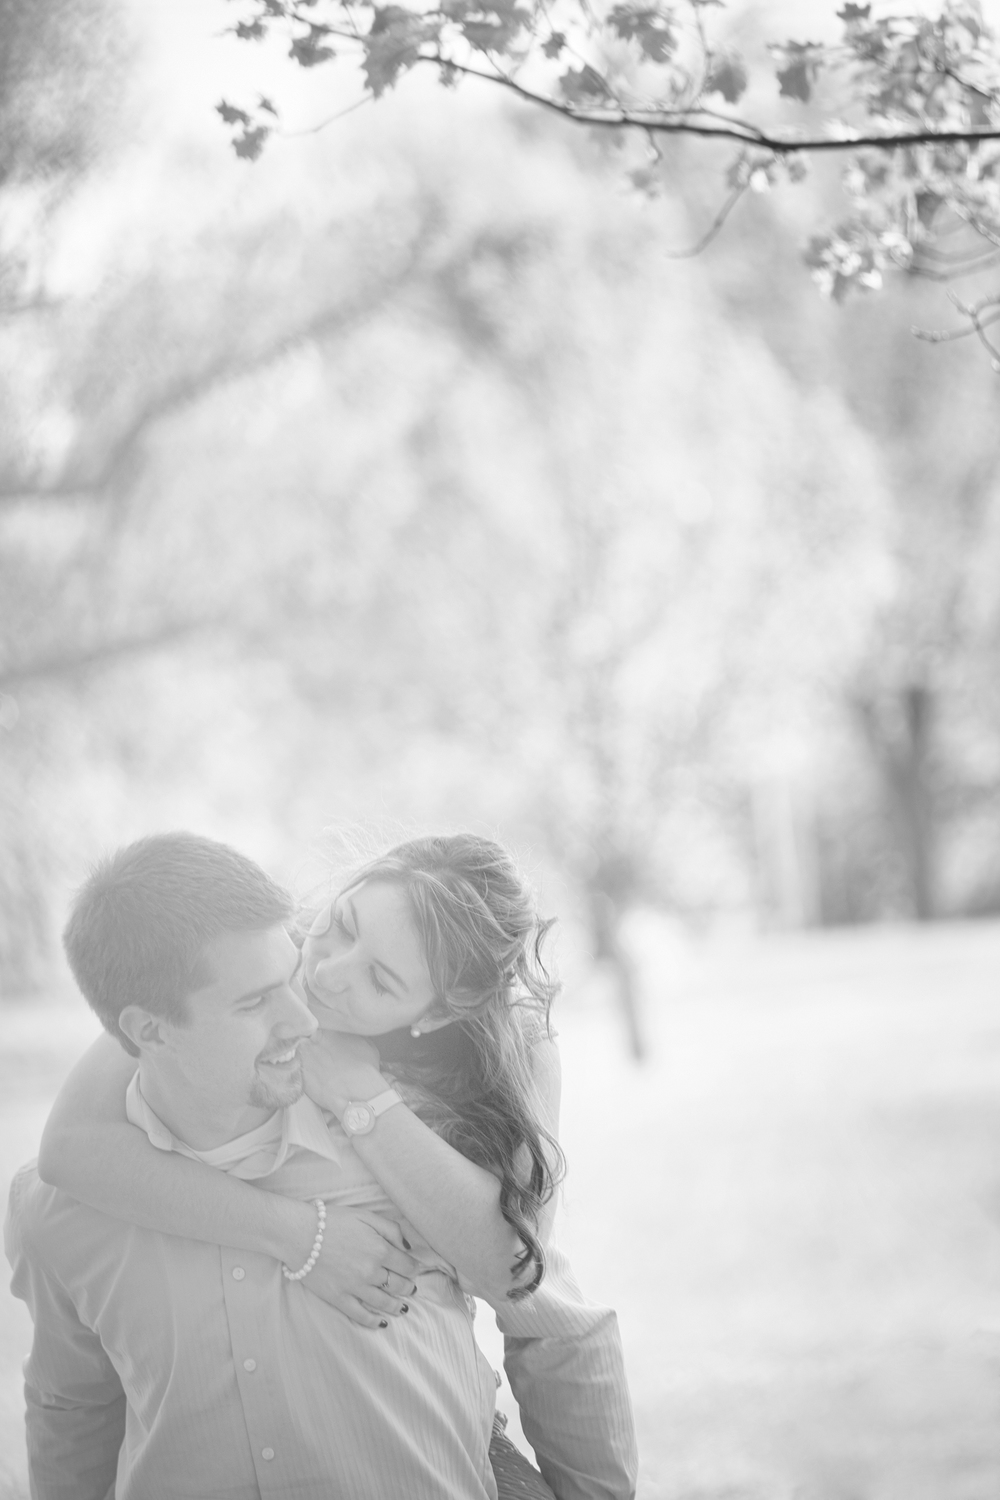 Cory & Keila - Engagement - April 2015 -  BRAD RANKIN STUDIO - 7L3A7495.jpg